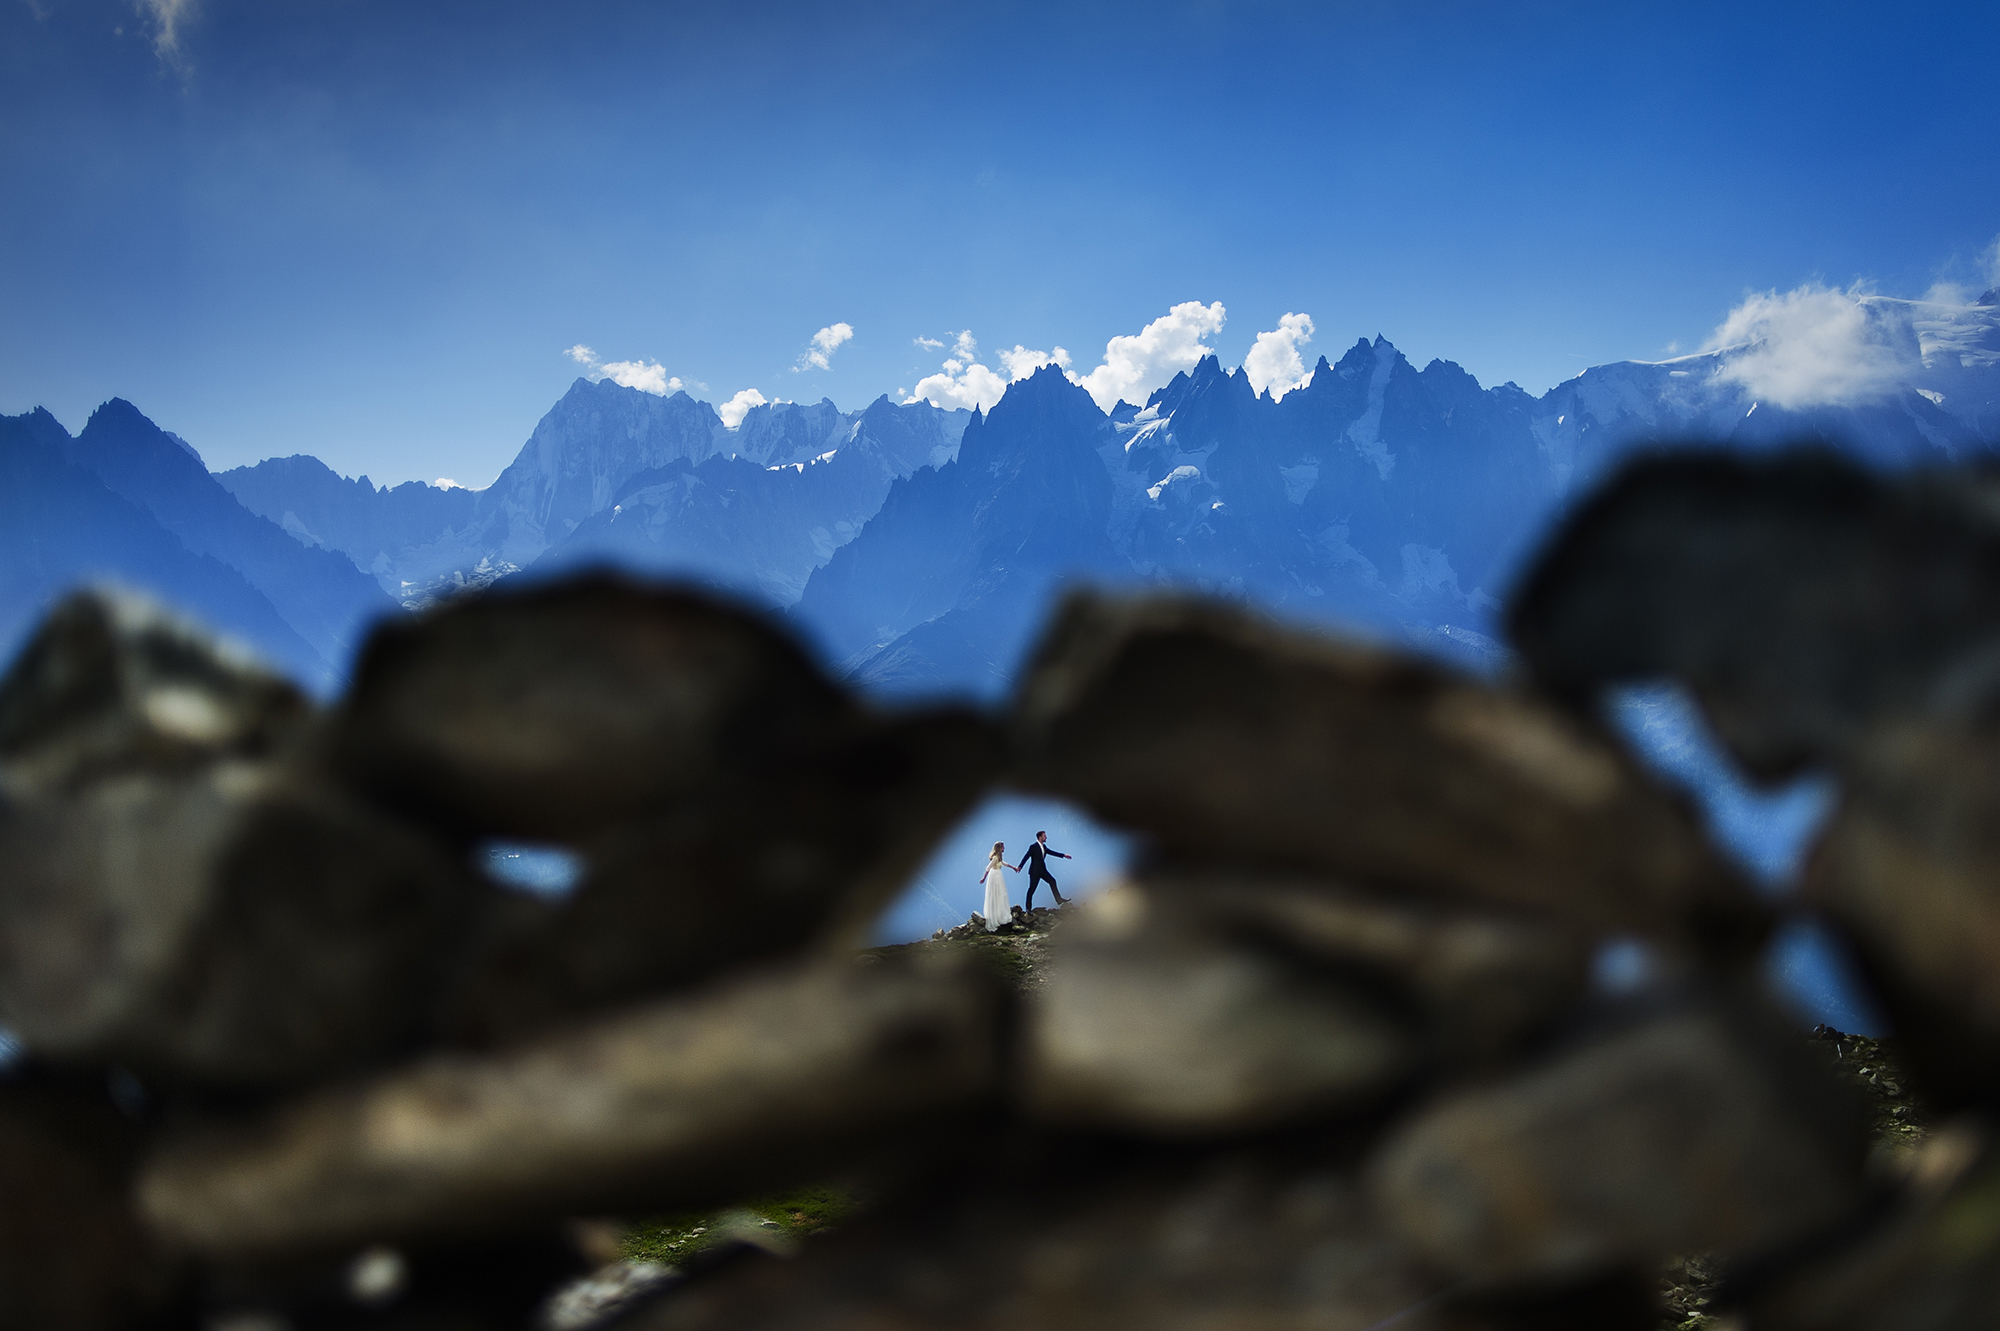 Bride and groom framed in rocks with mountain backdrop - photo by Victor Lax